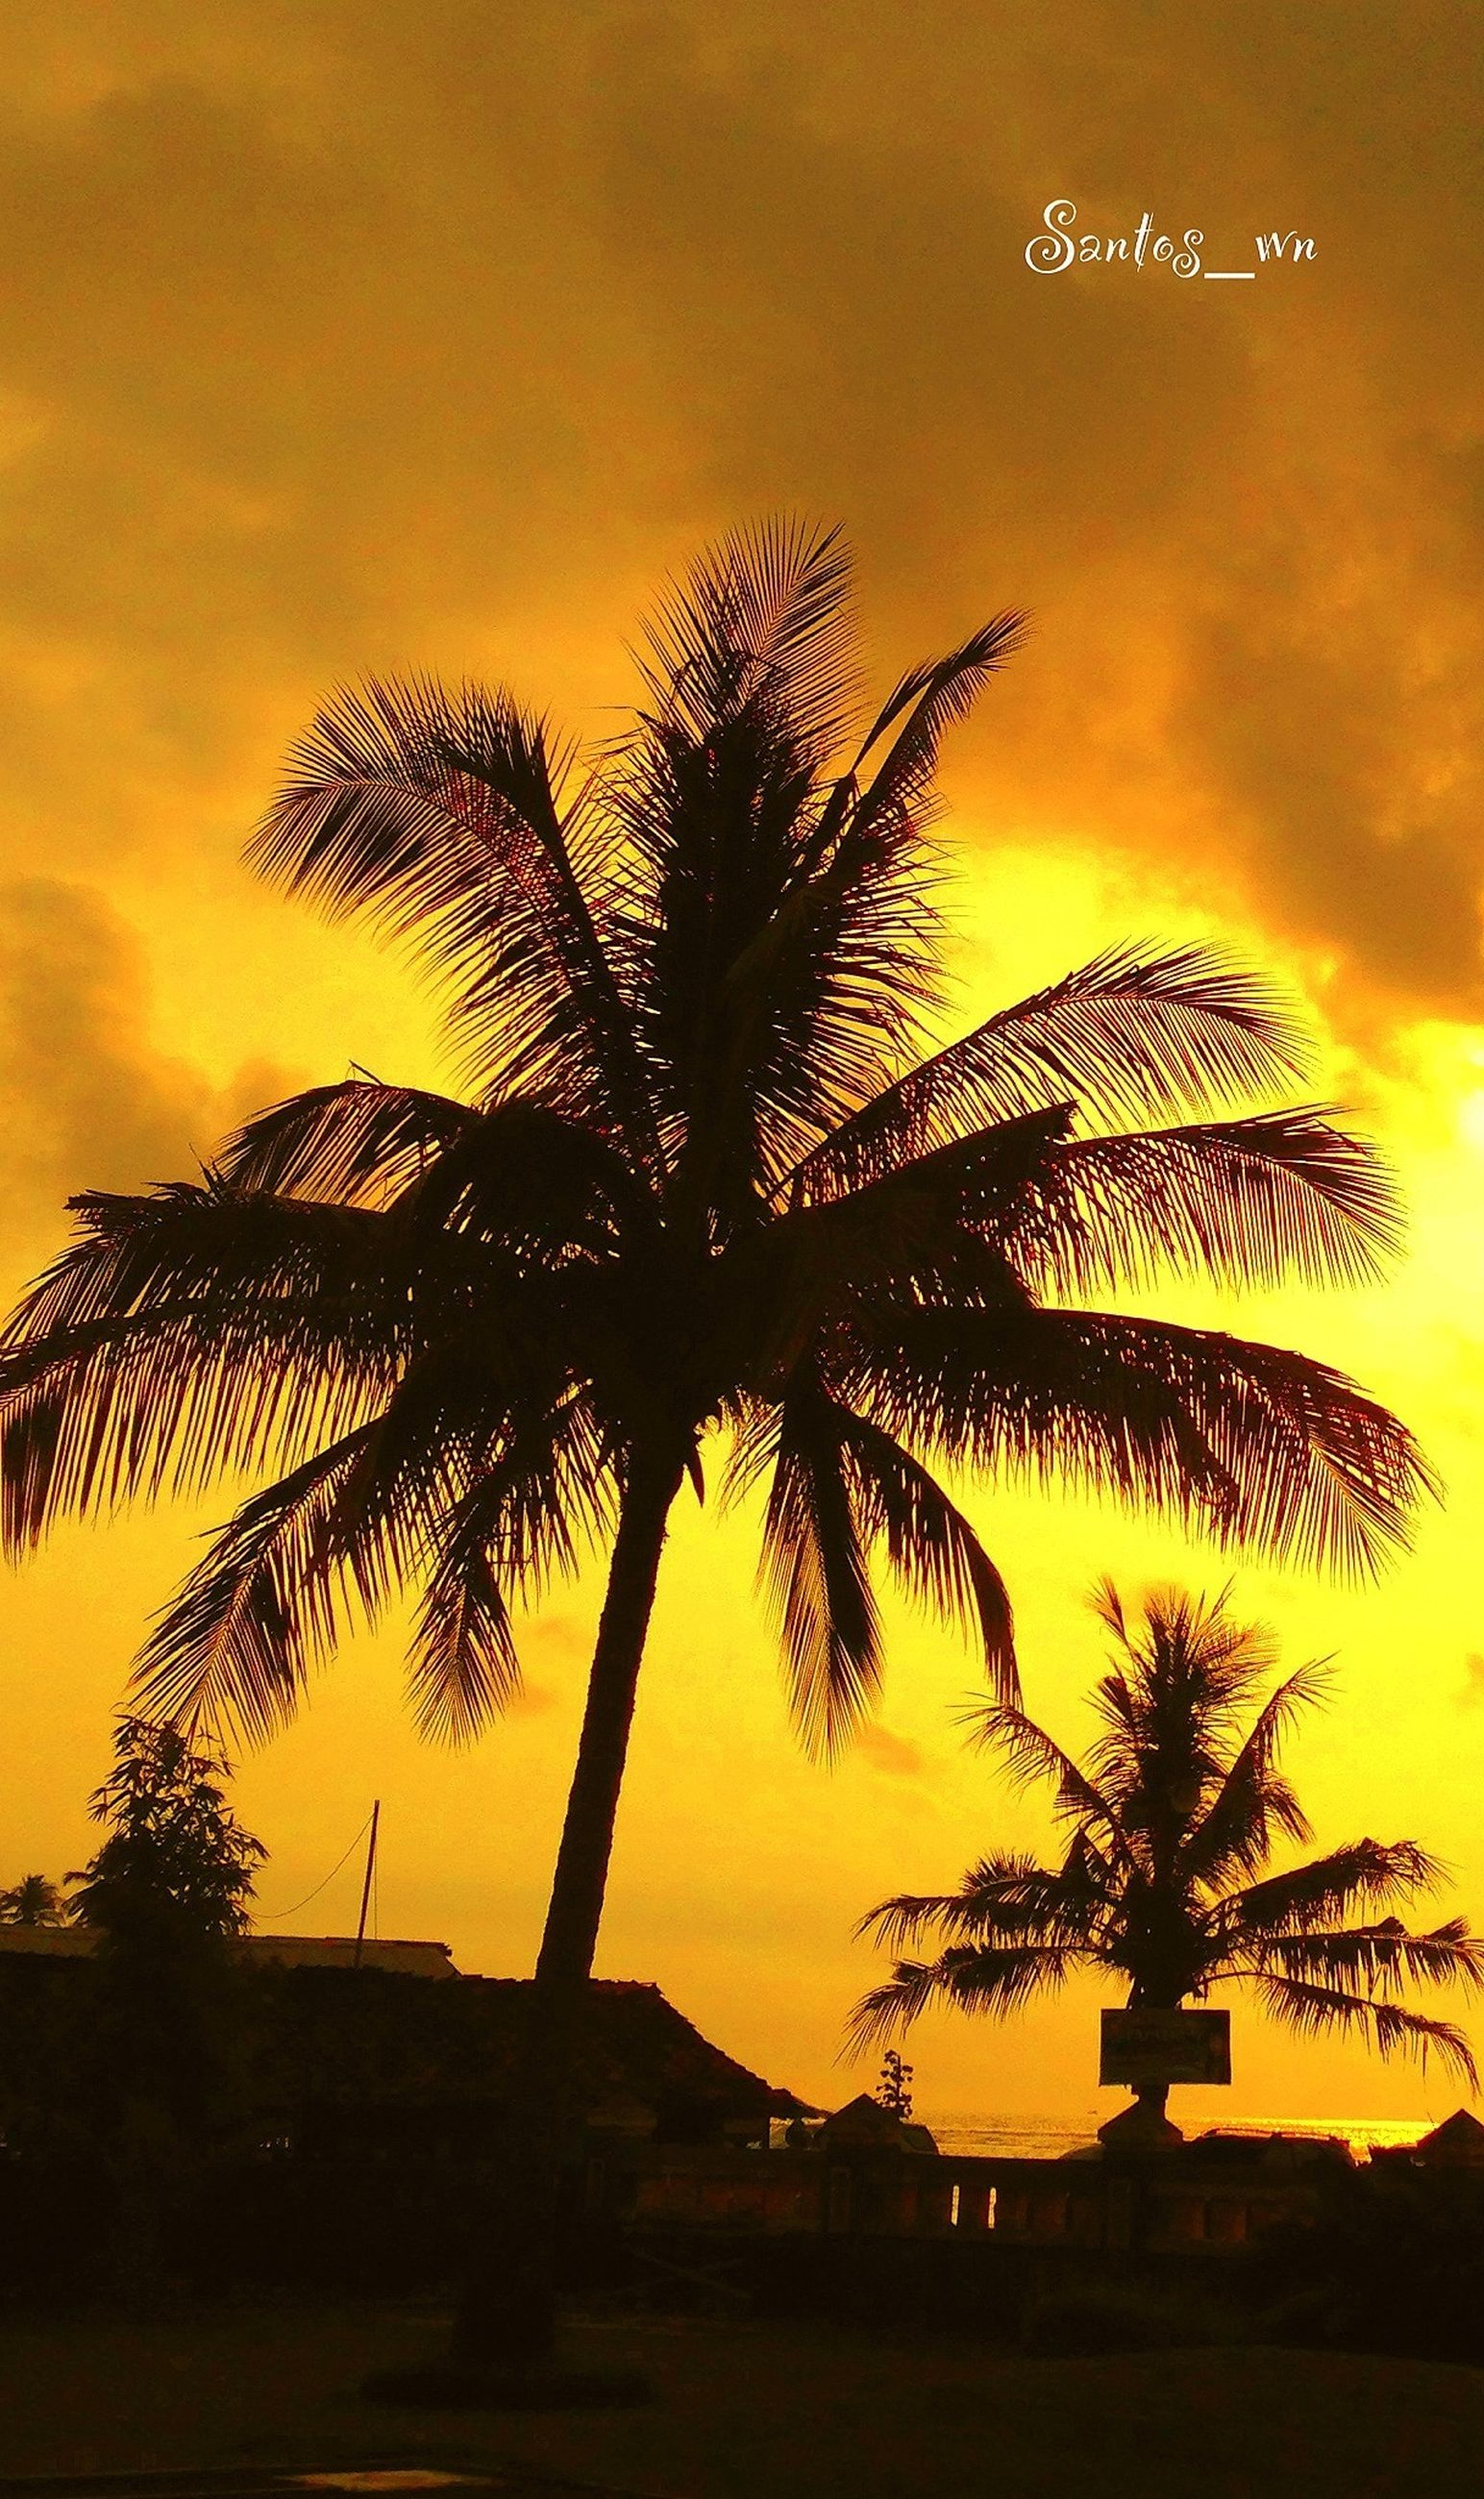 sunset, silhouette, orange color, palm tree, tree, sky, scenics, beauty in nature, tranquility, tranquil scene, nature, idyllic, dramatic sky, growth, romantic sky, outdoors, no people, sun, dusk, low angle view